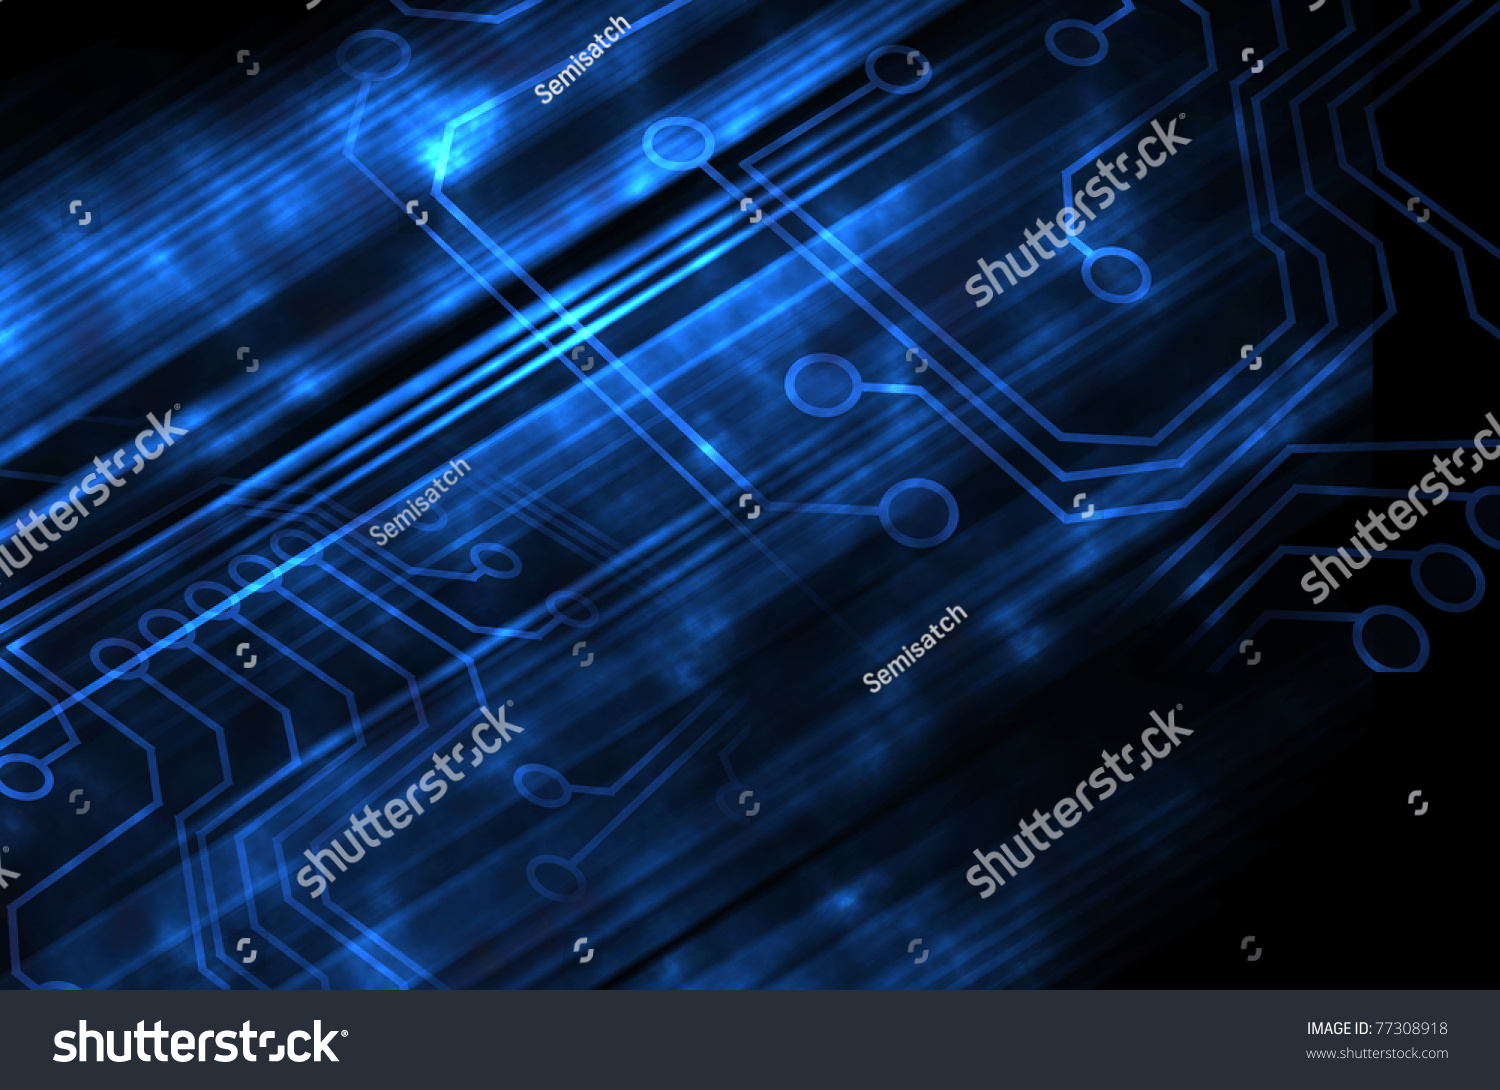 Microchip Background Stock Photo 77308918 : Shutterstock